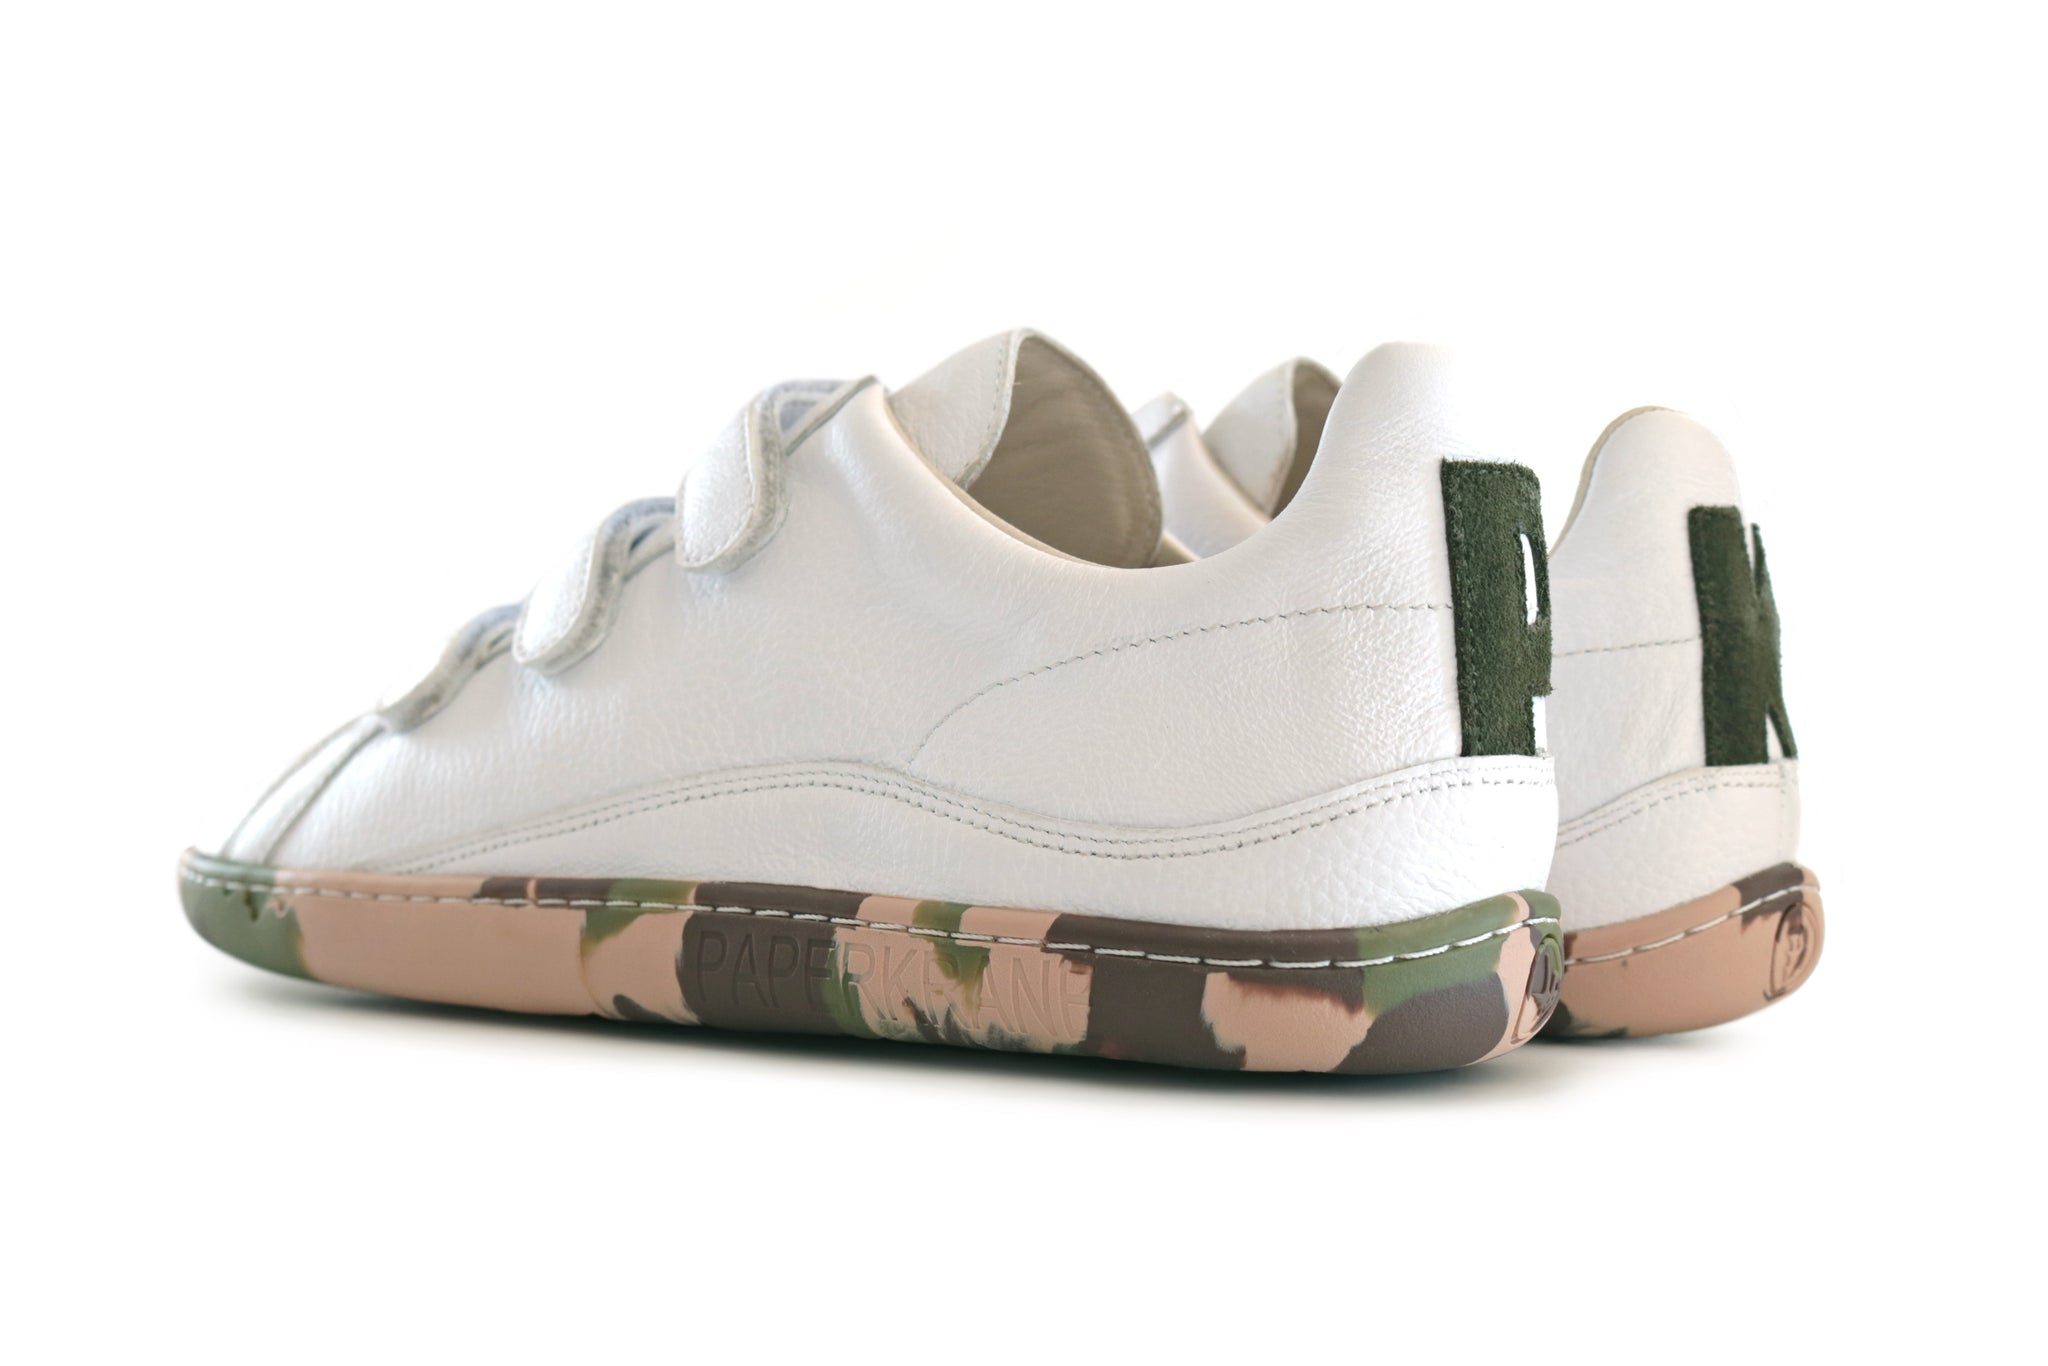 REAR VIEW OF PK VELCRO SHOE WITH CAMO SOLE AND WHITE UPPER